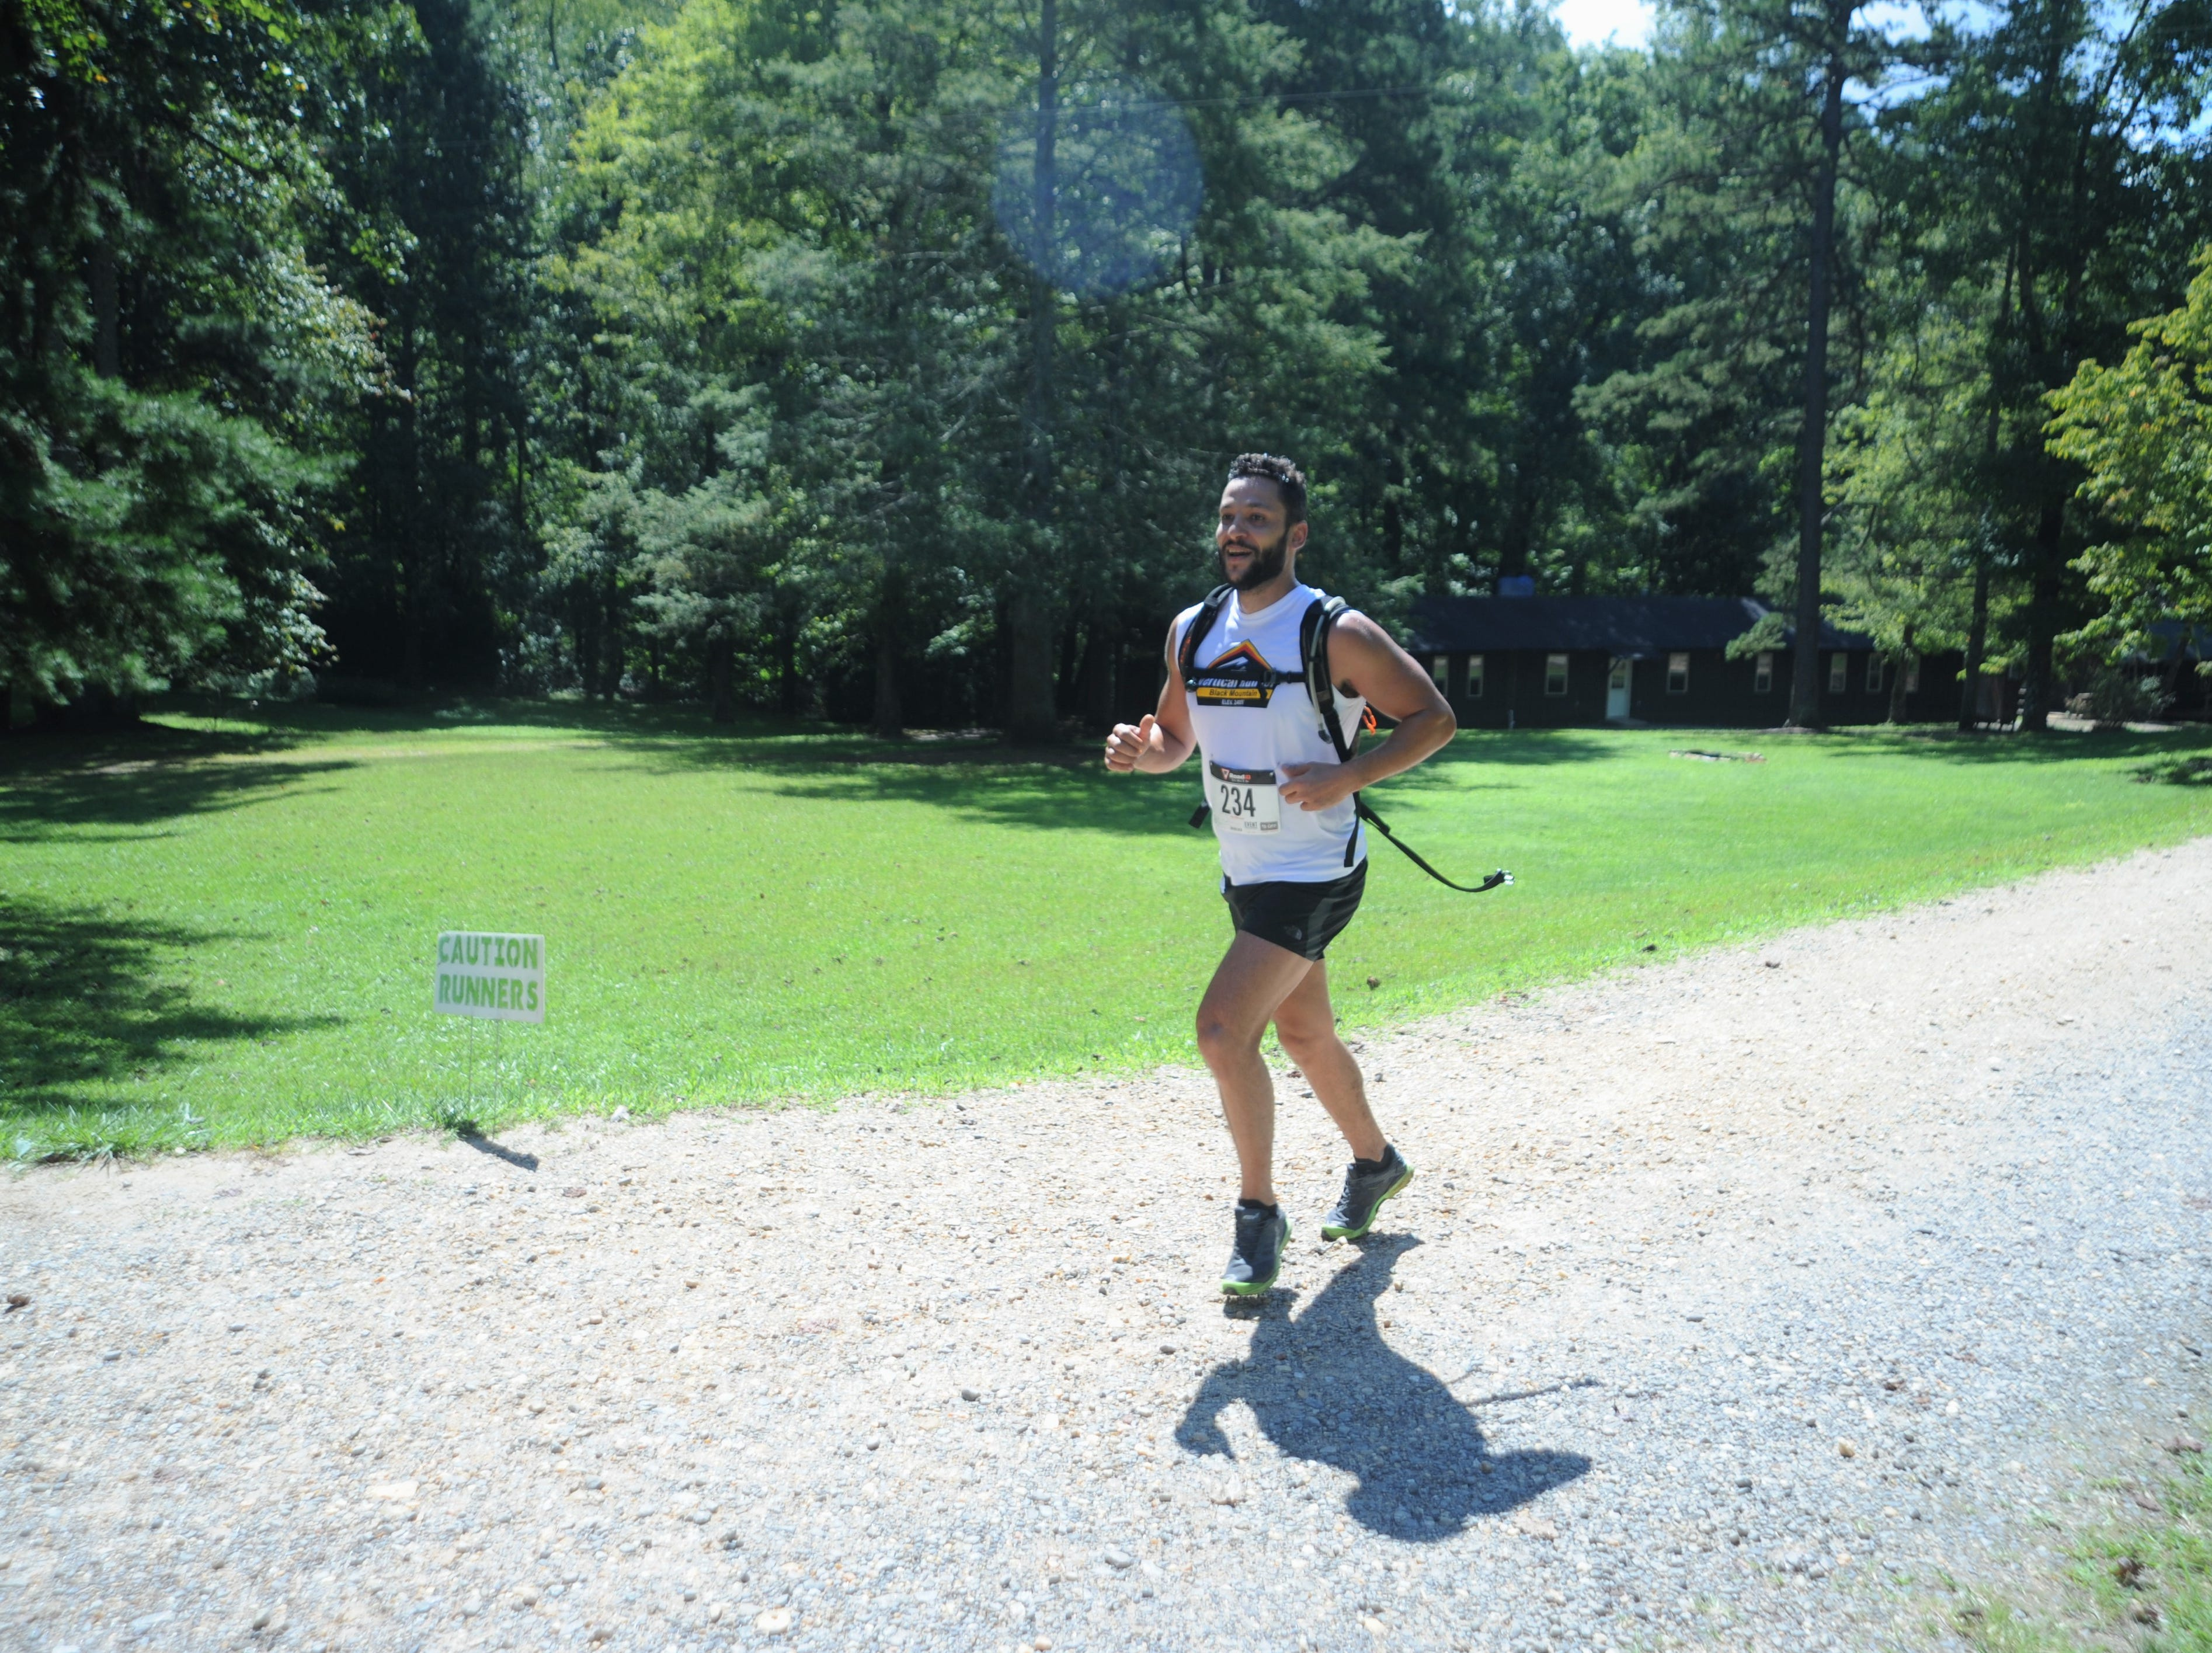 The second annual Gateway 5K & 10K was held at Camp Grier in Old Fort on Monday, Sept. 3. The race featured runners, many from Black Mountain, taking on the trails that wind through the scenic campground.